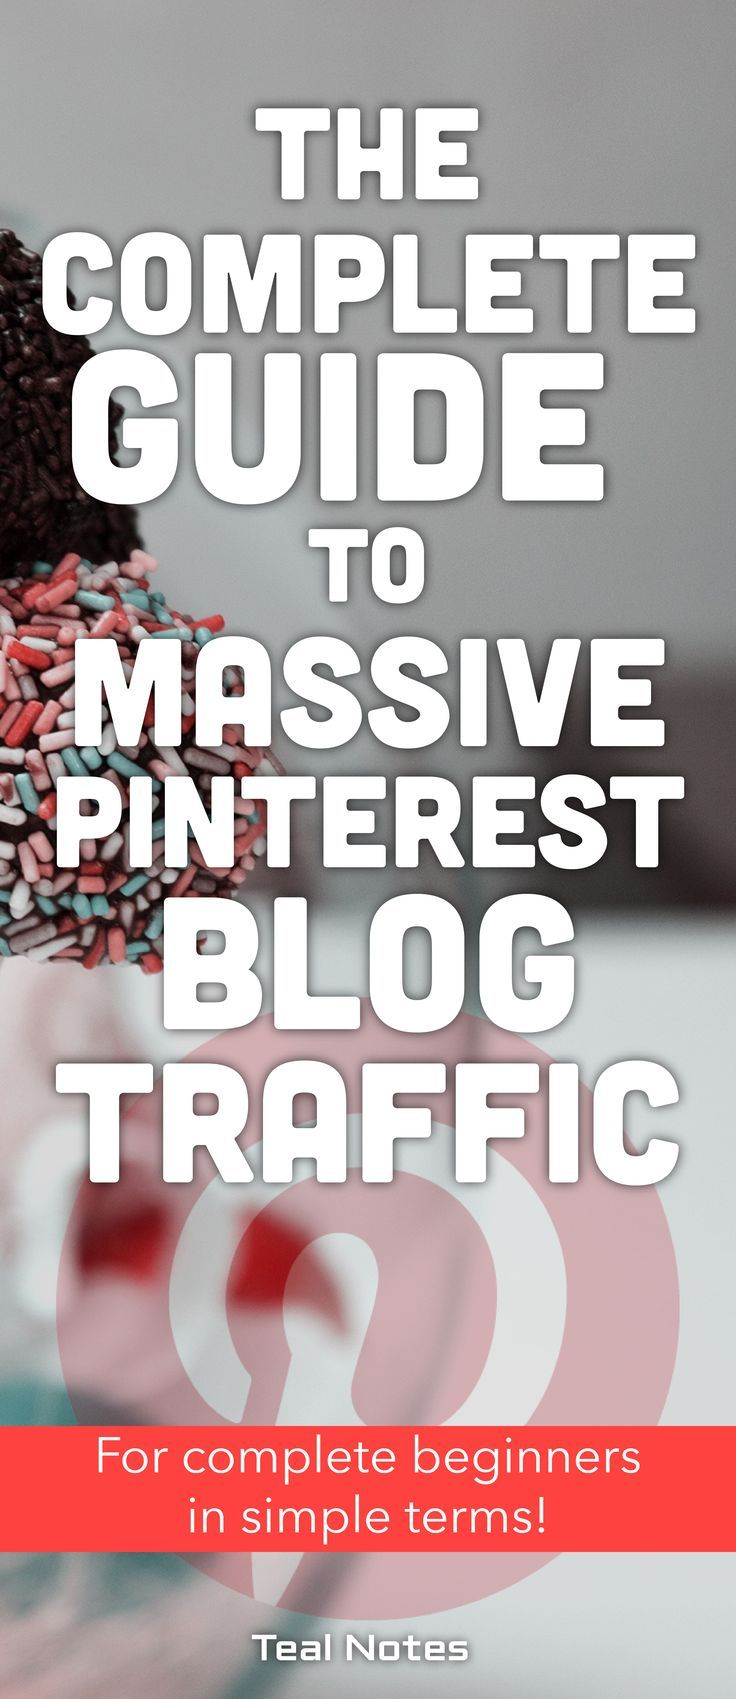 Do you want an avalanche of page views and blog traffic for your new blog? Pinterest traffic is where you should be focusing your energy! Learn how to use Pinterest to increase blog page views and be more findable on search engines with Pinterest SEO. Get the latest tips and tricks to grow your business blog and make money. Pinterest Blog Traffic | Teal Notes | Make Money Blogging |